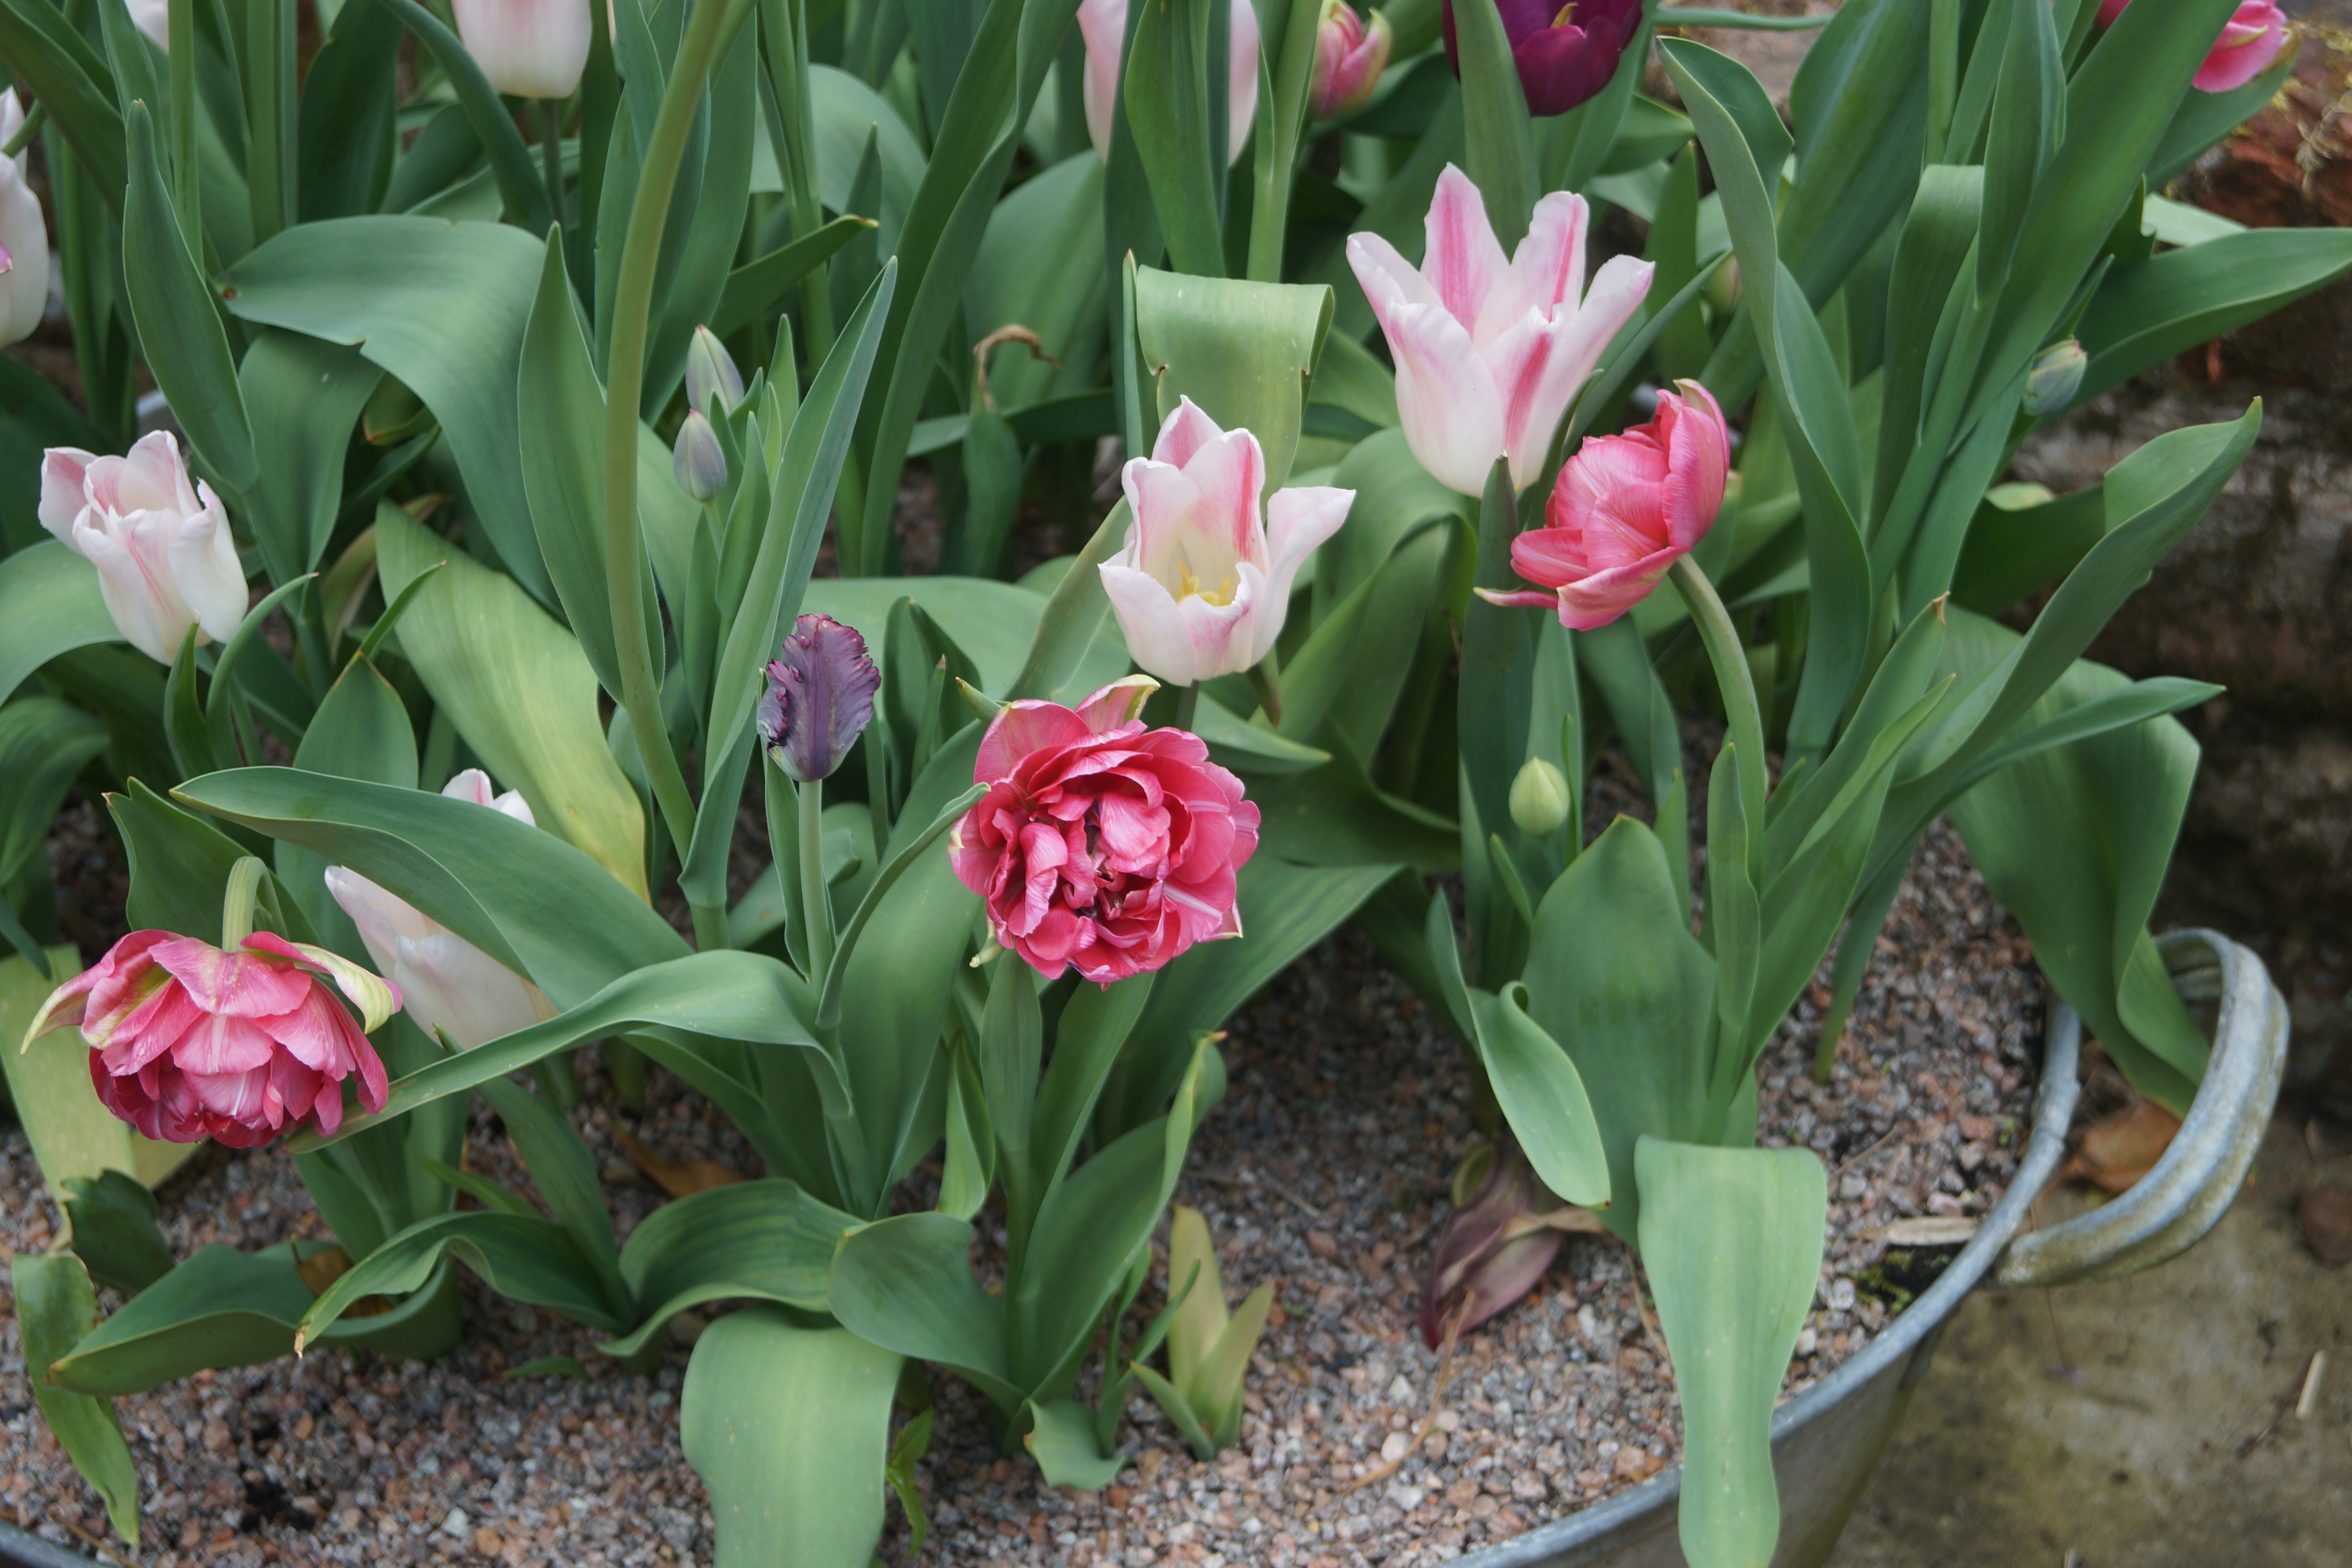 If you want to make the most beautiful pots for your garden, try layering bulbs in the pot. You'll be amazed at how beautiful your pots look.